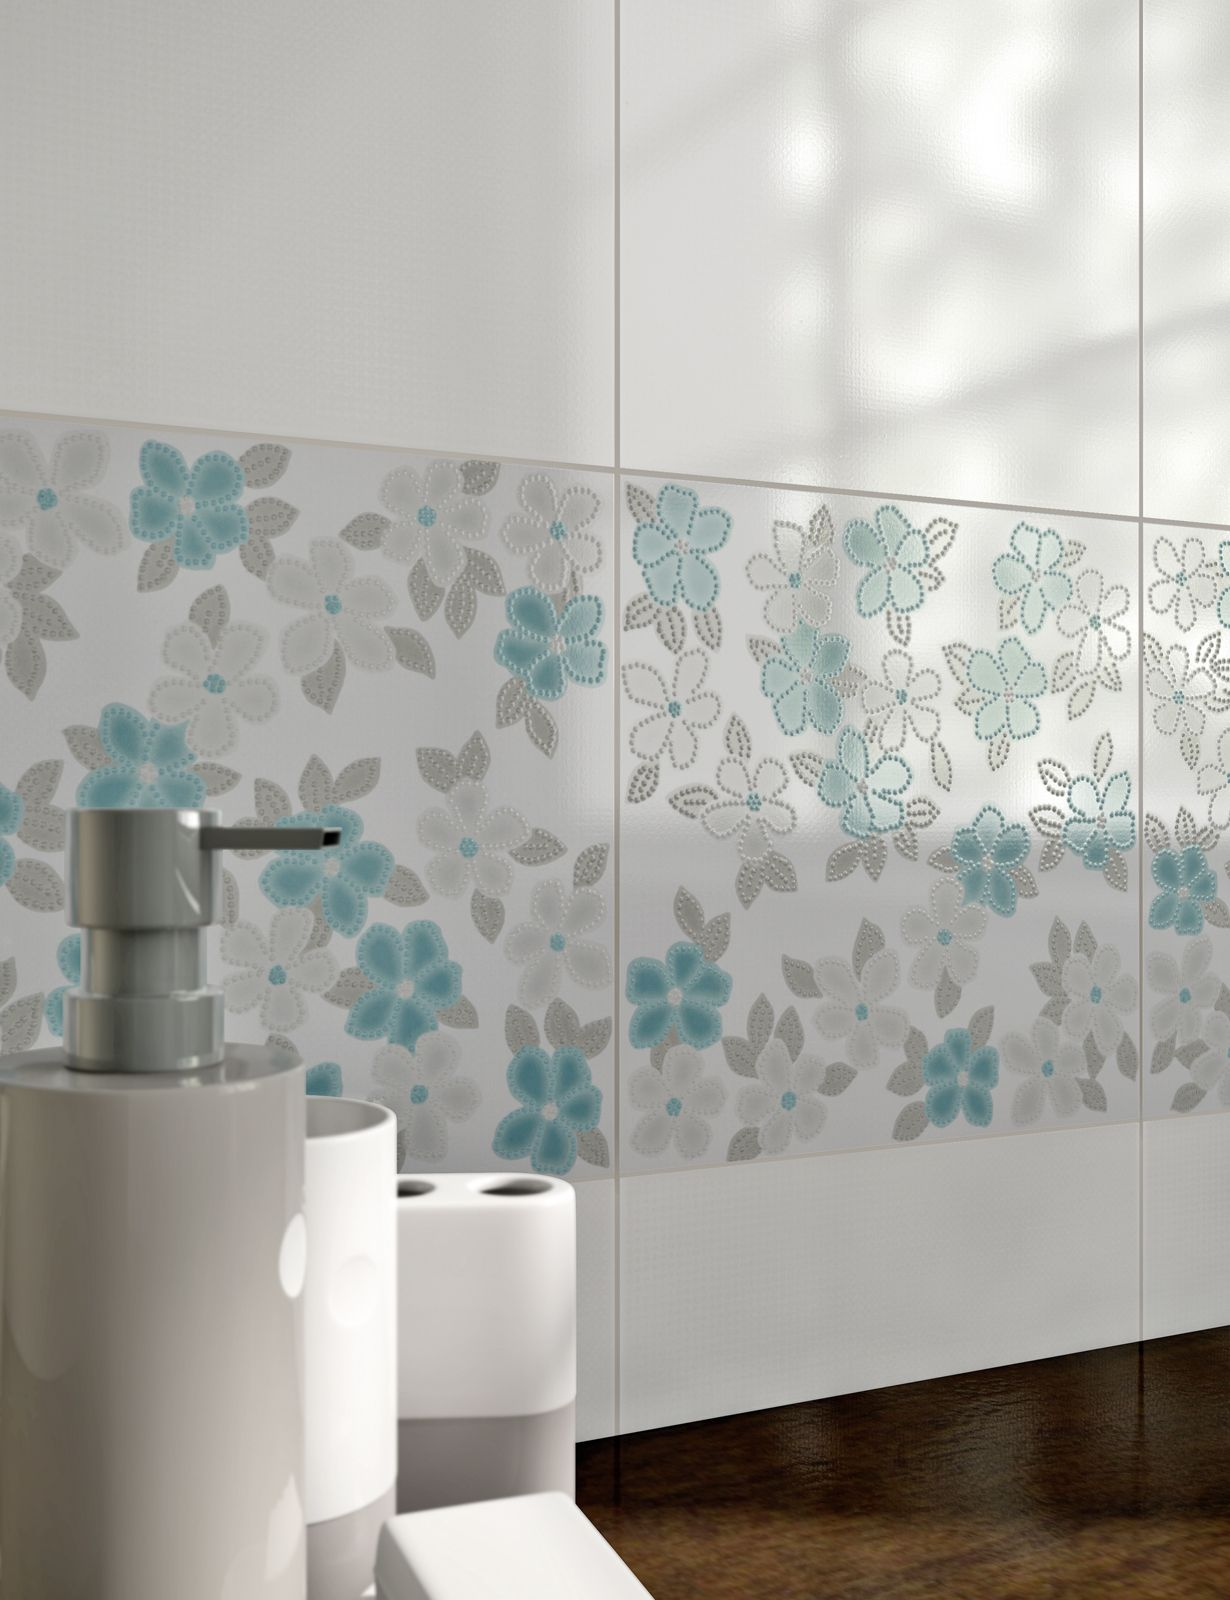 Lollipop Bathroom And Kitchen Glossy Wall Tiles Marazzi Wall Tiles Tiles Bathroom